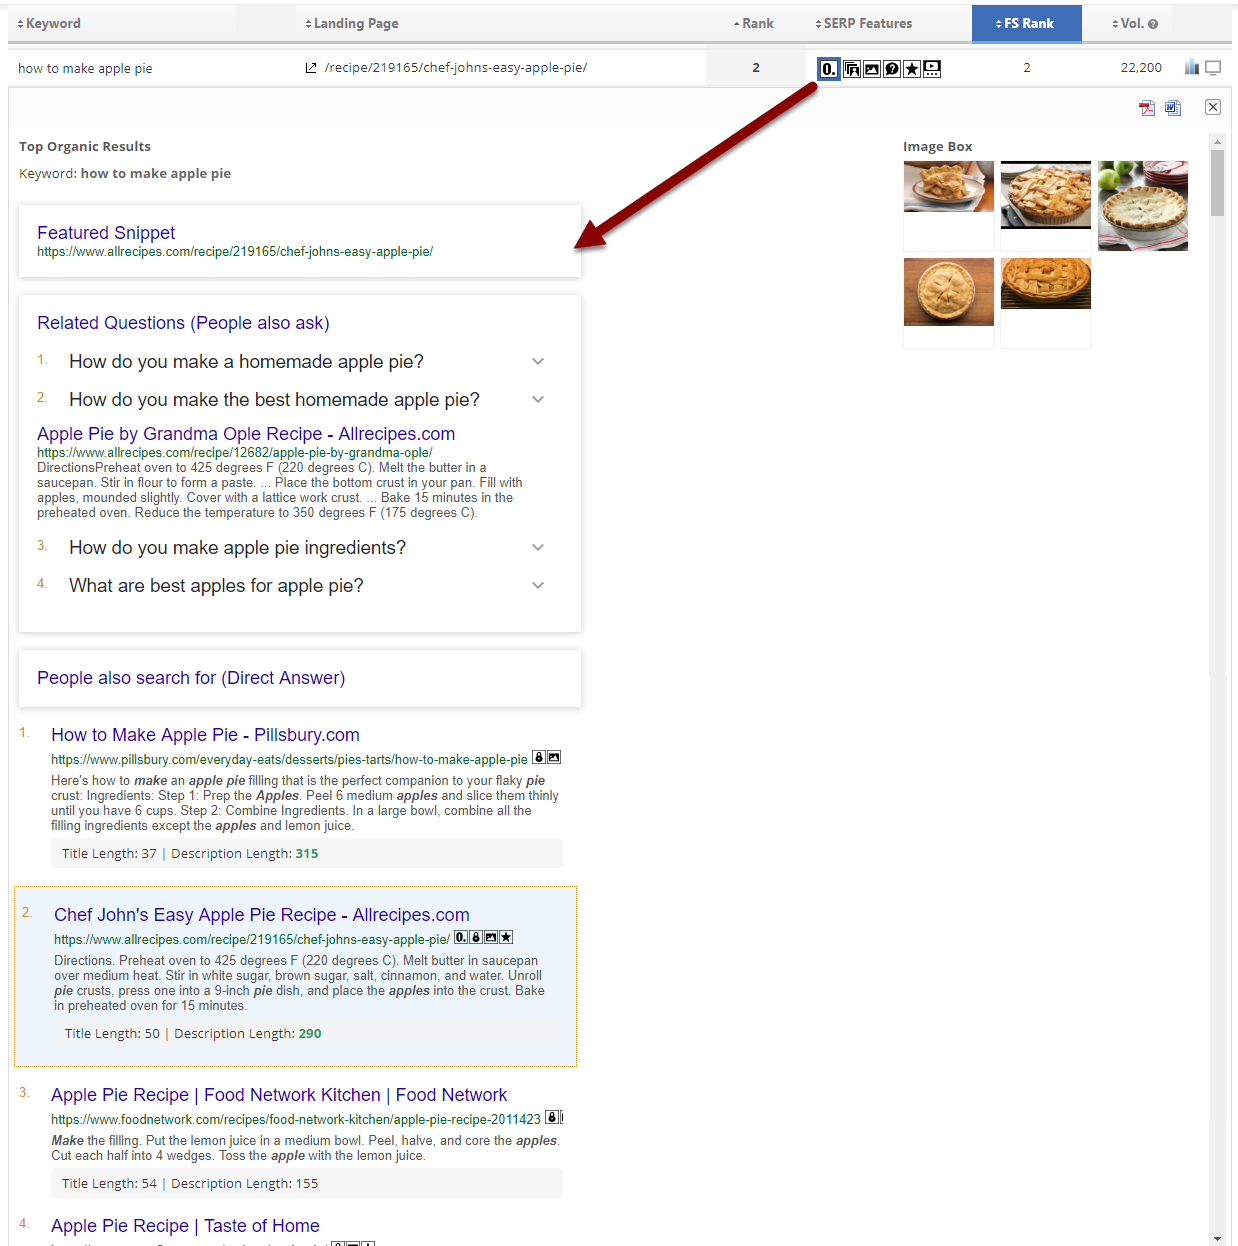 Featured Snippet in SERP Snapshot